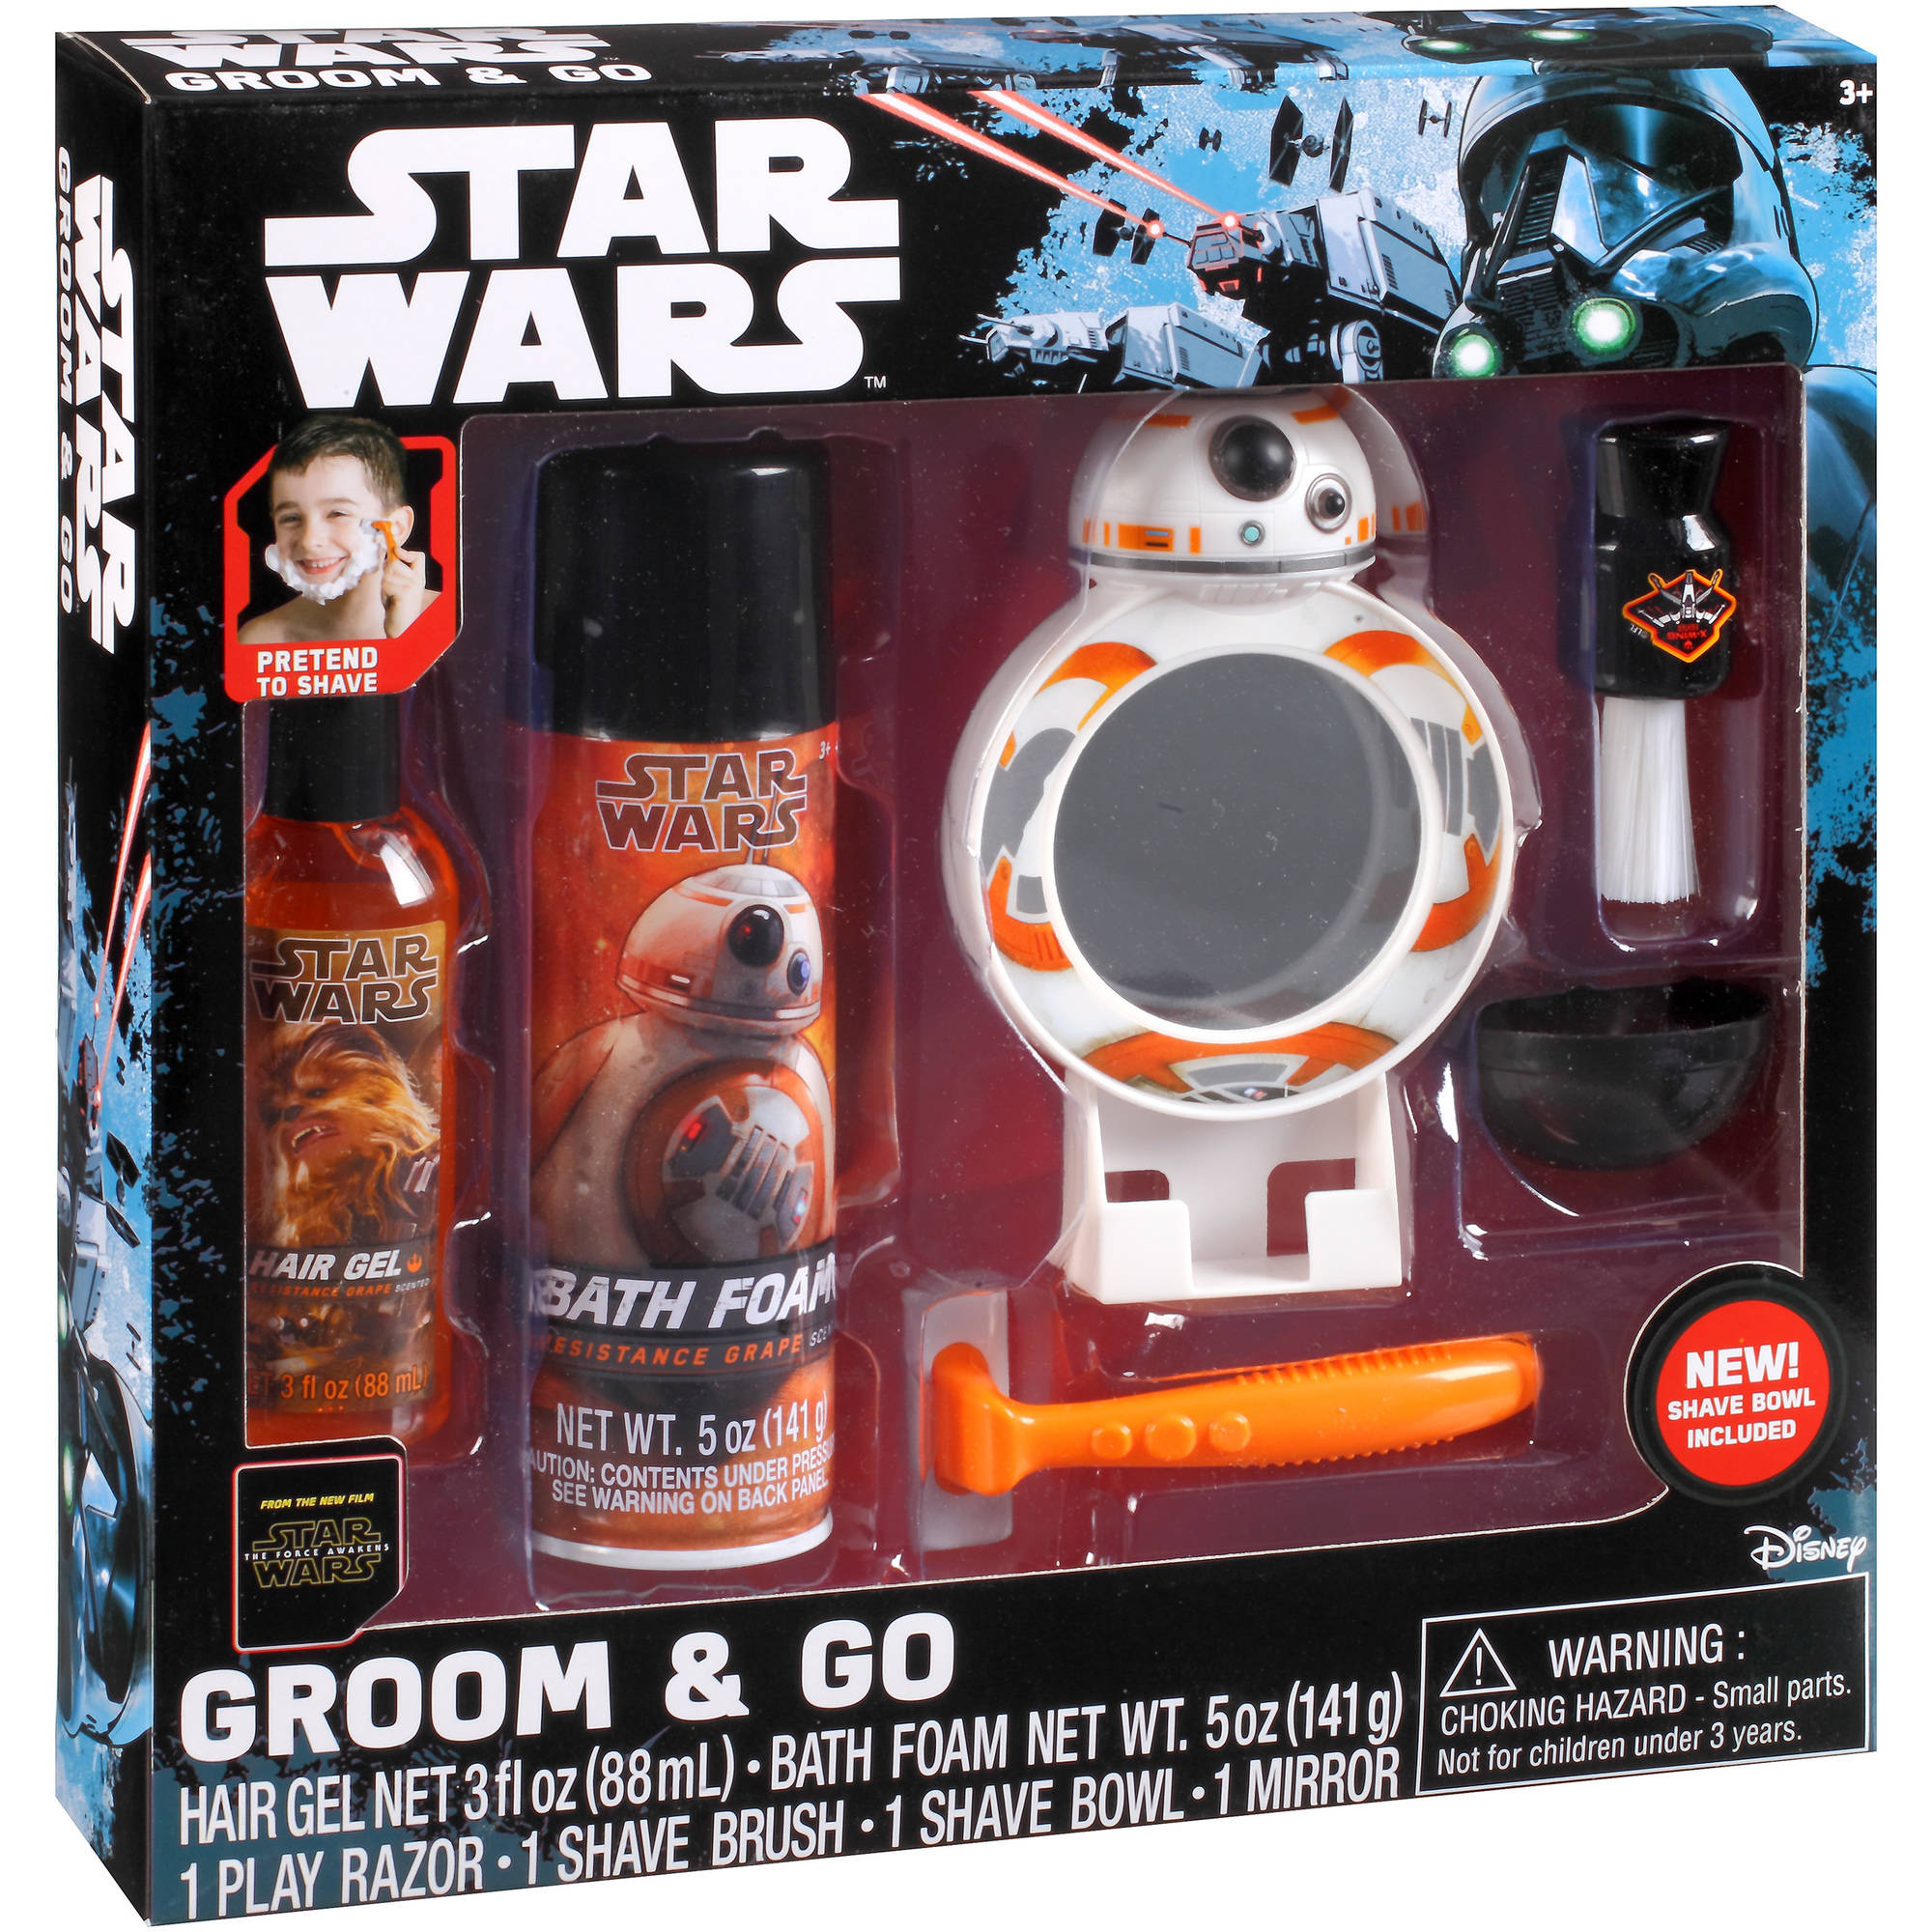 Star Wars Groom & Go Bathtub Play Set, 6 pc